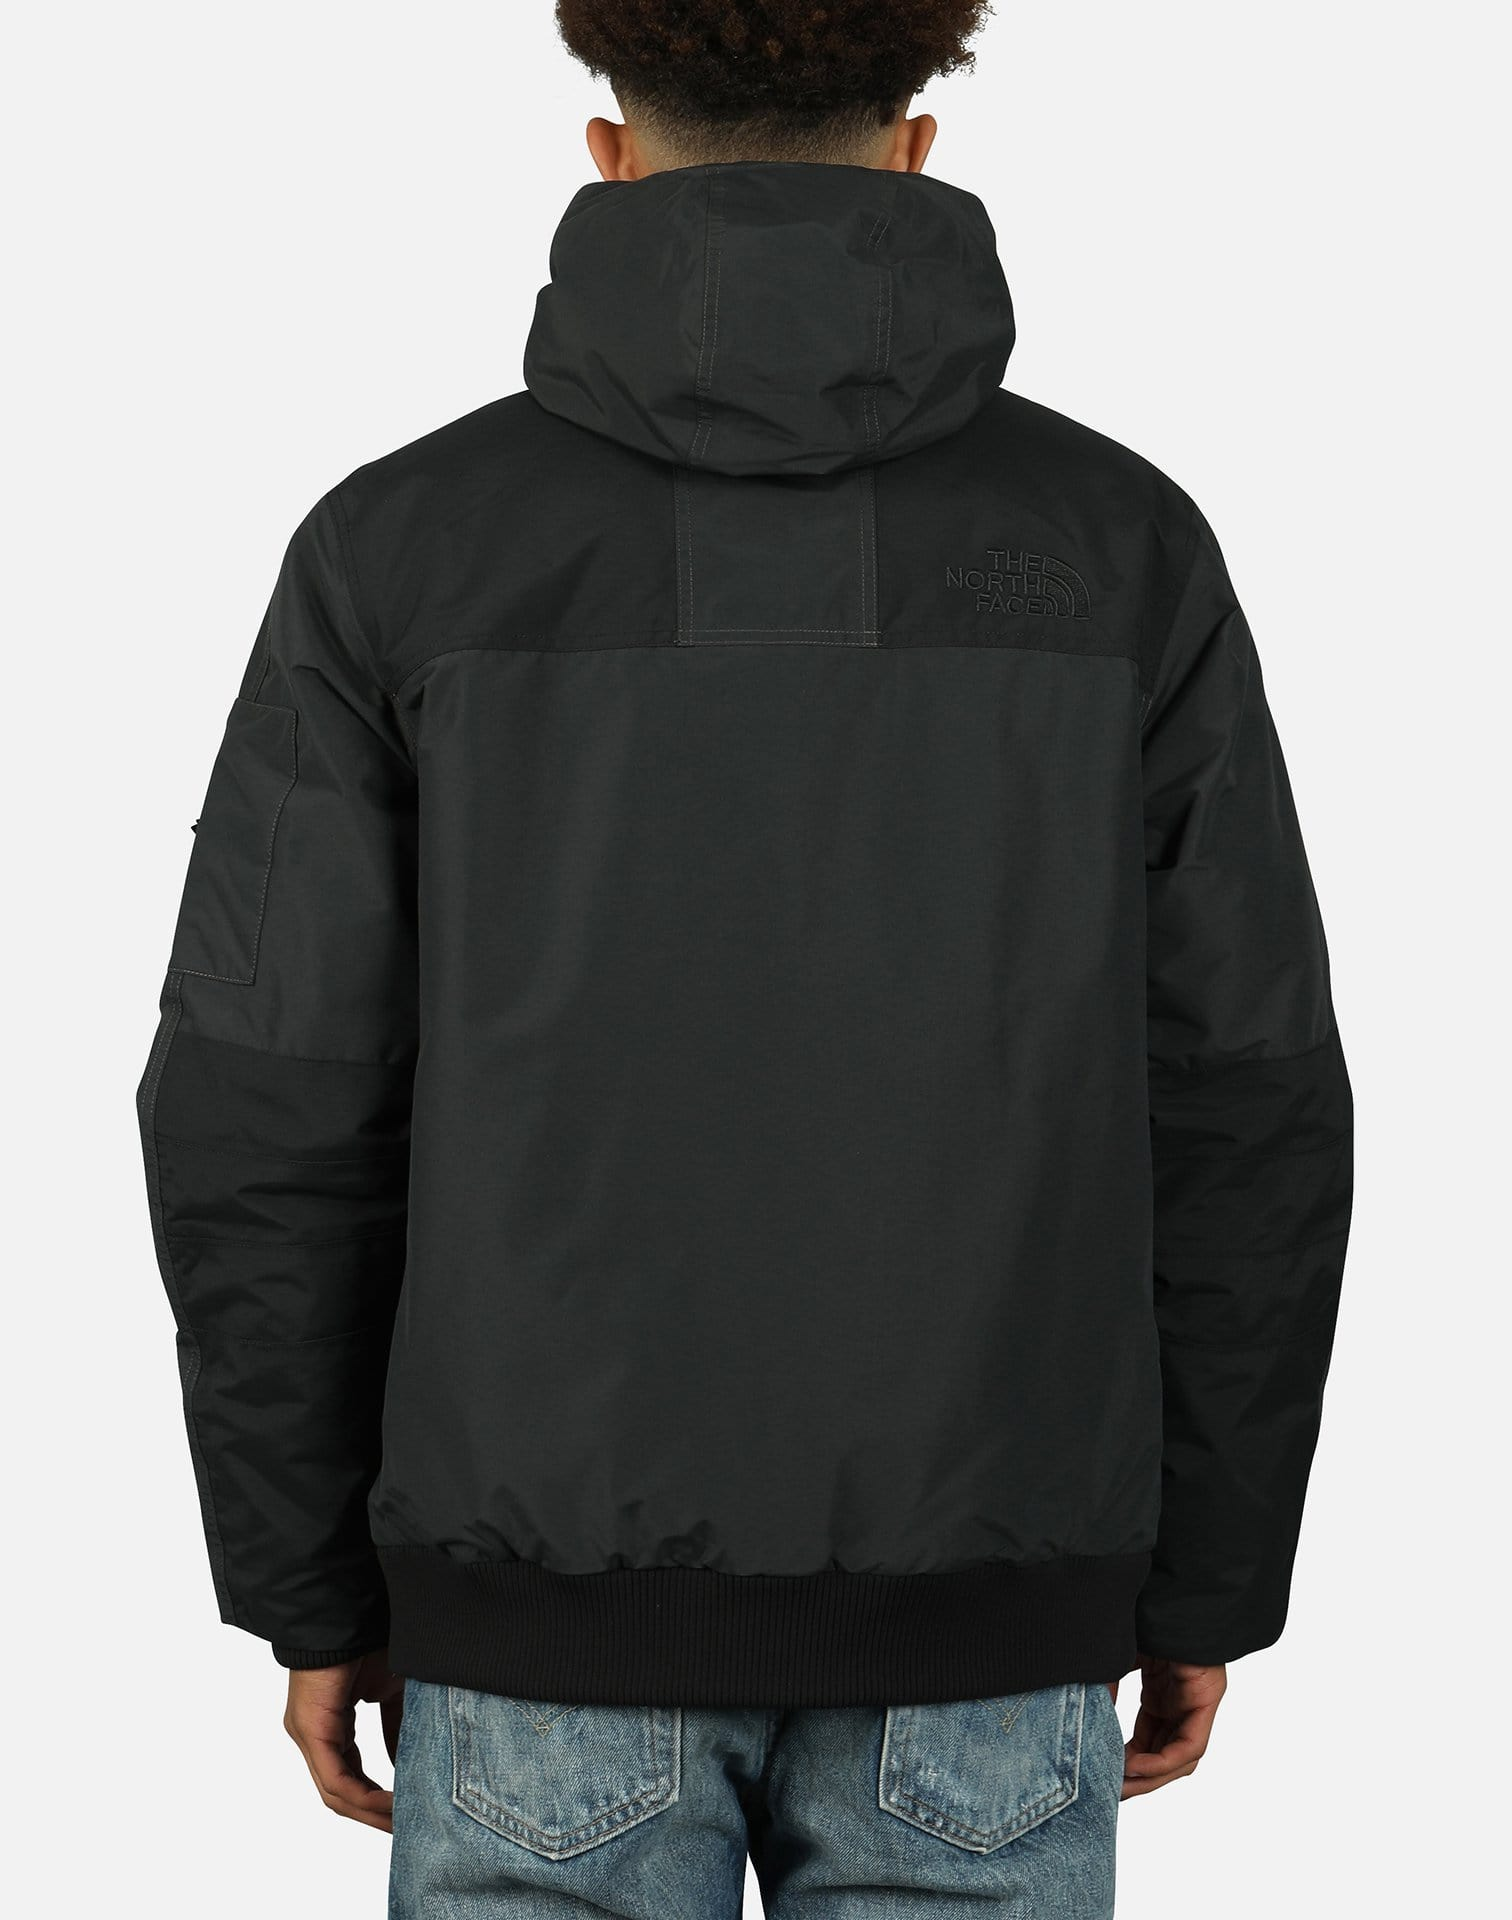 The North Face mMen's Newington Jacket